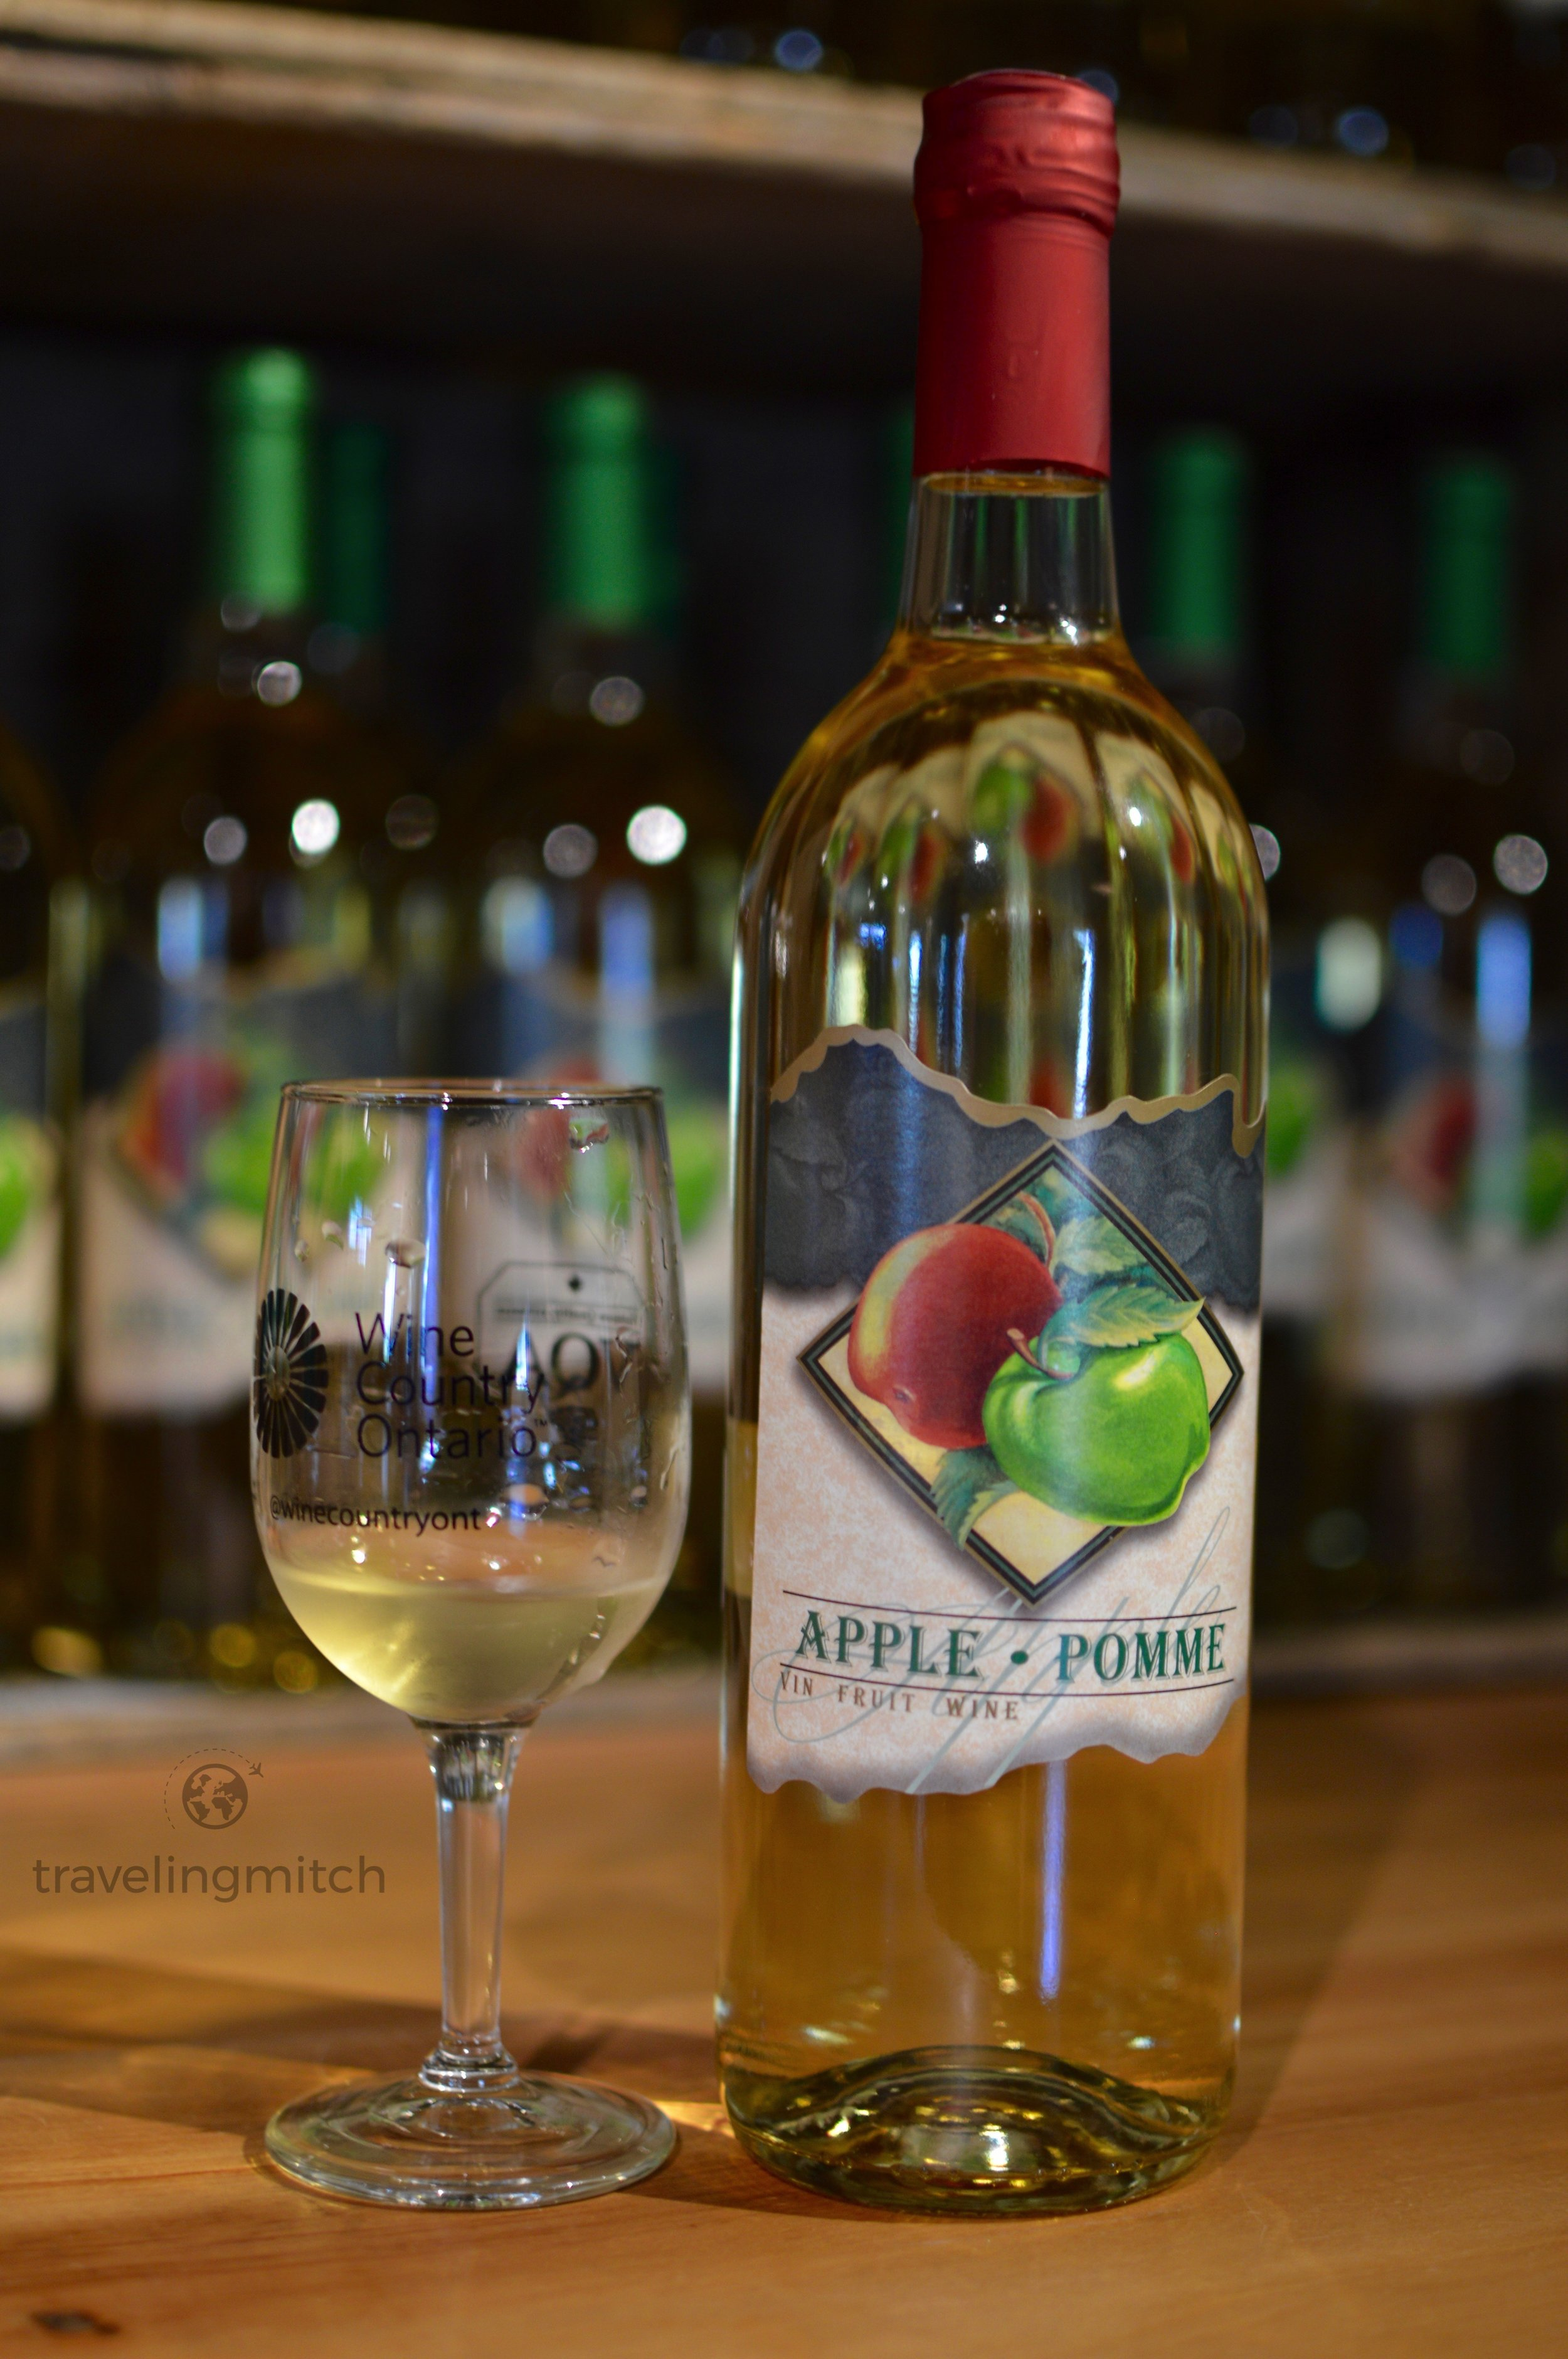 Ocala Farm Orchards Winery produces a mighty fine apple wine